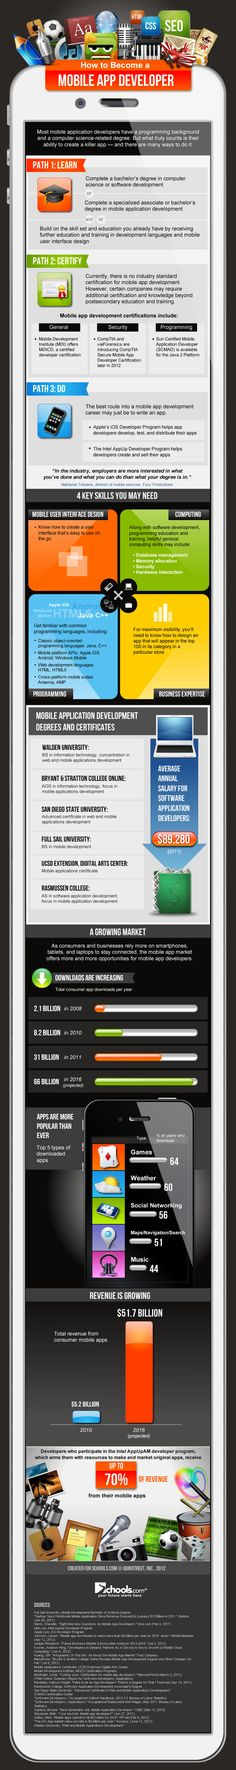 Visualistan: How To Become A Mobile App Developer [Infographic]